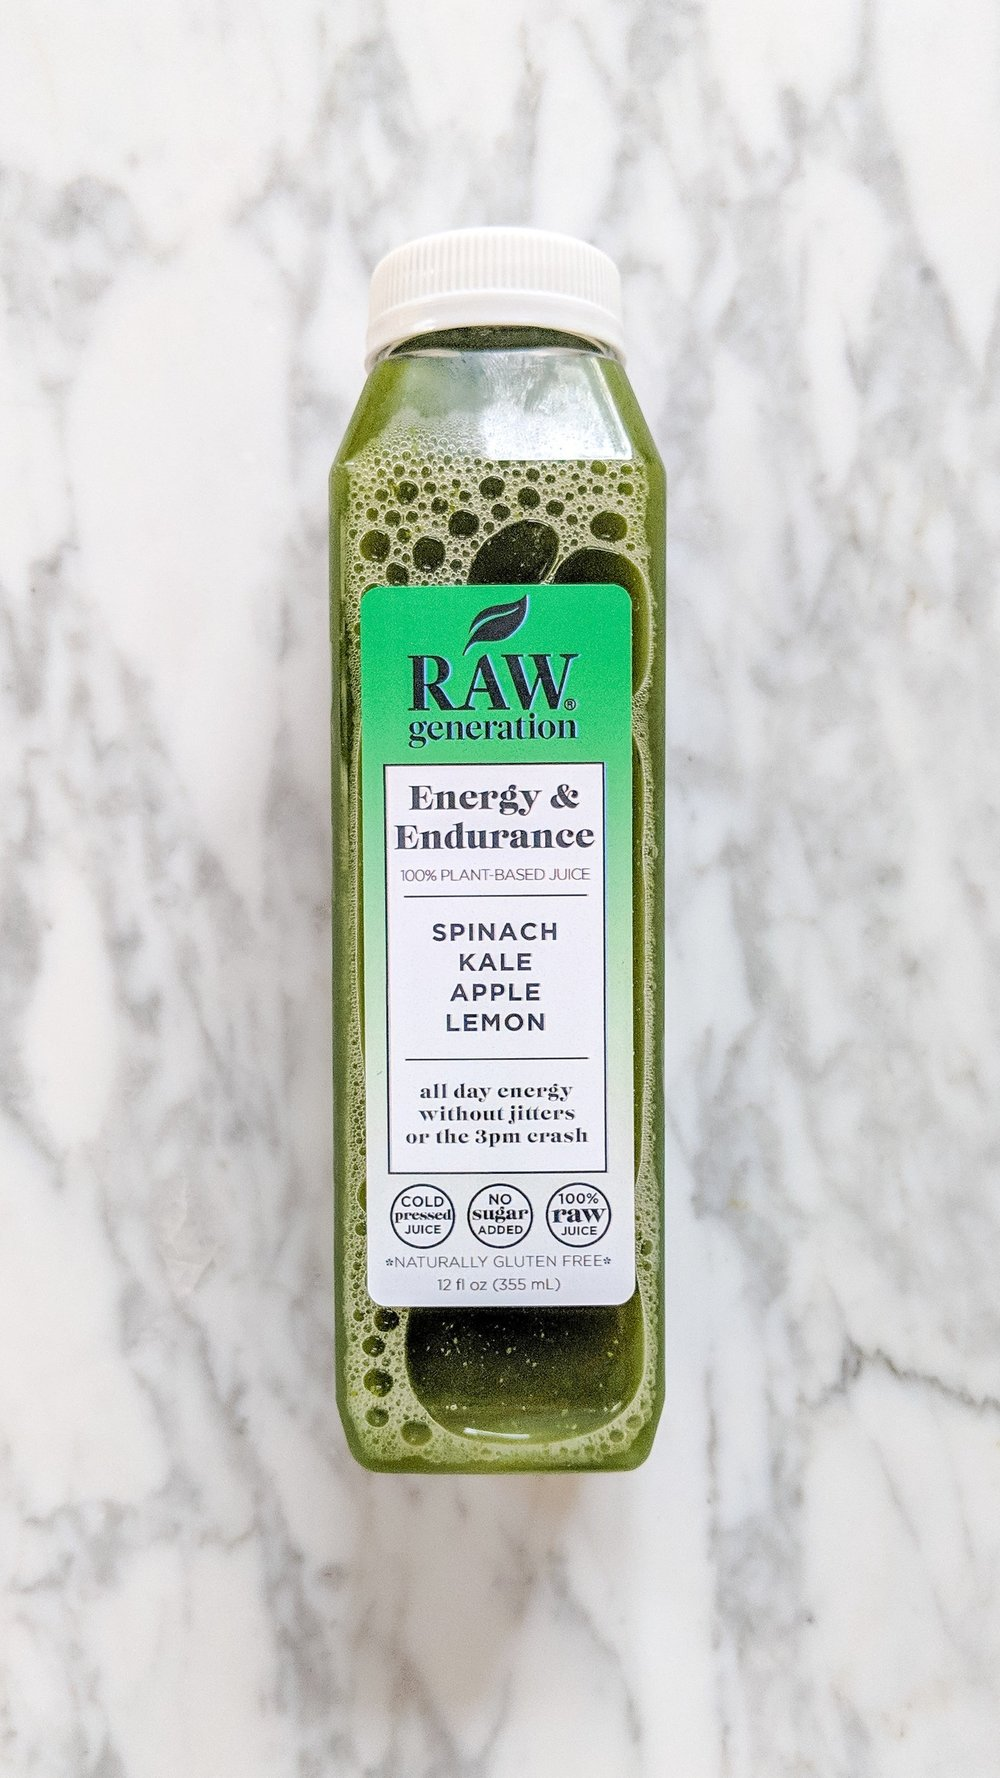 """""""Energy & Endurance"""" - INGREDIENTS: apple, spinach, kale, collard, lemon, and filtered water WHAT IS DOES: This juice is for """"all day energy without jitters or the 3pm crash."""" I started each day with this juice to give me energy and start my day strong. You get two of this flavor a day so I usually had the other one toward lunch time!"""